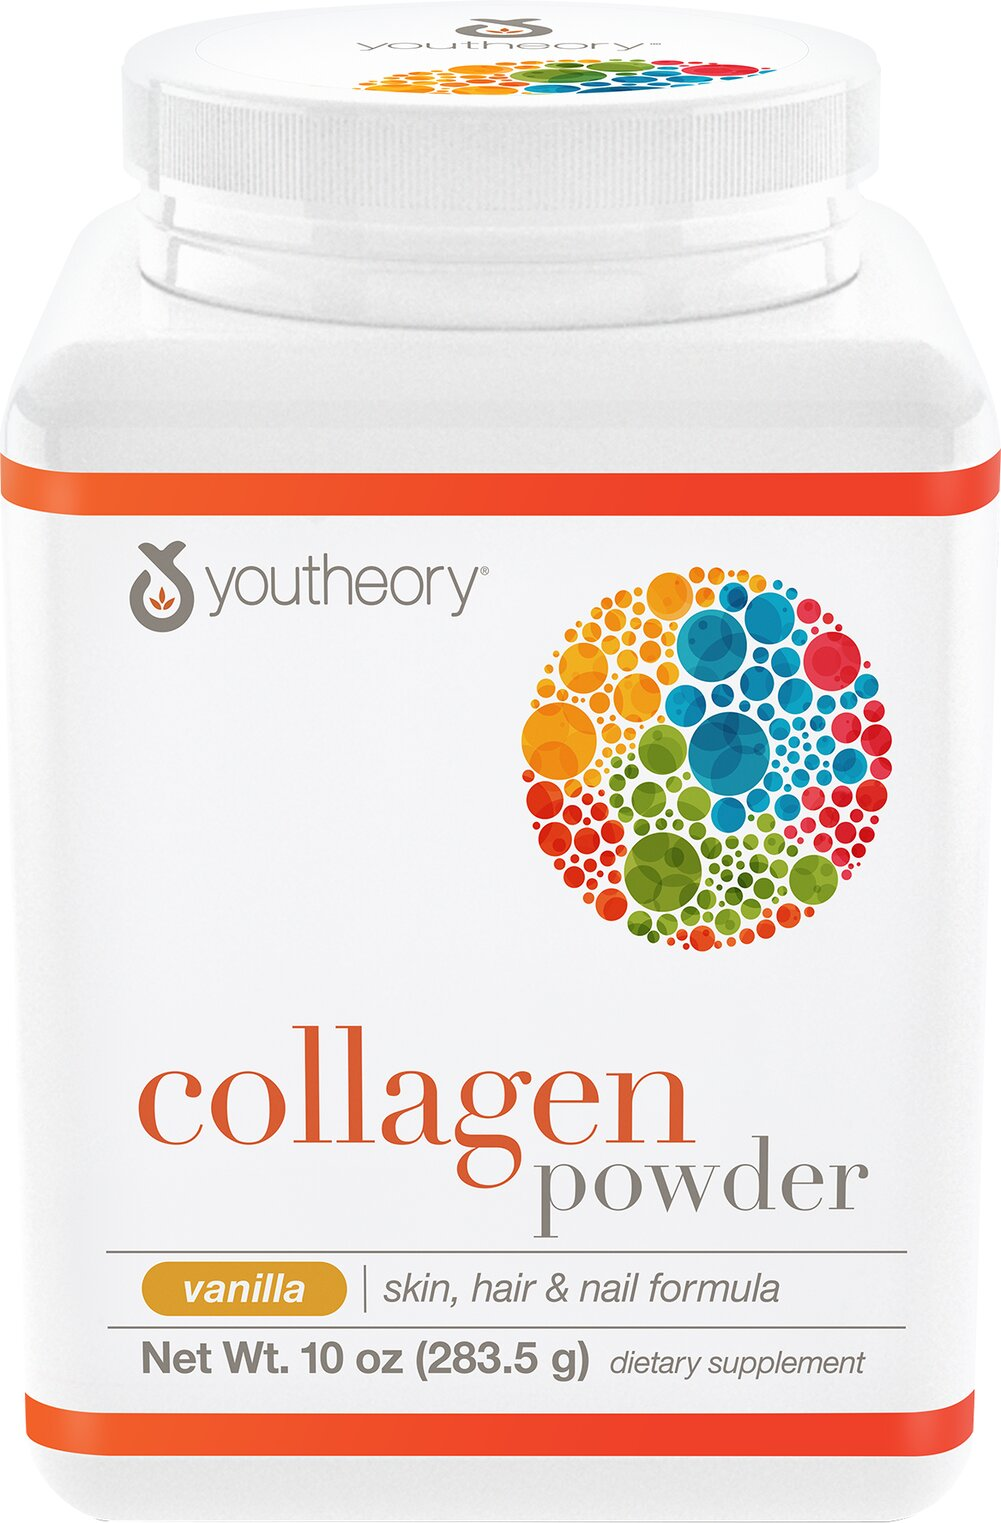 Collagen Powder - Vanilla